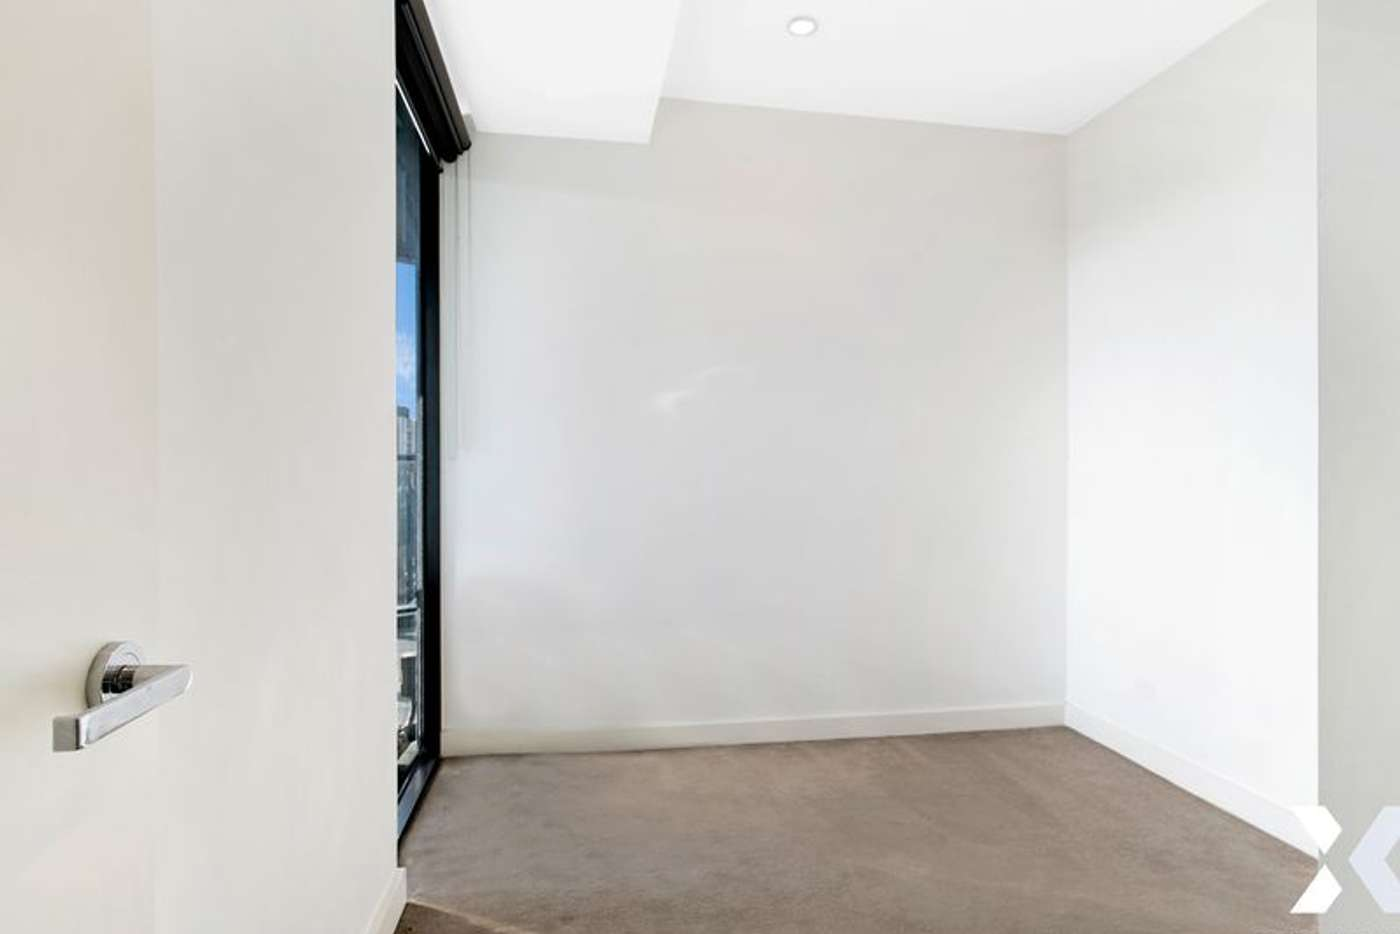 Sixth view of Homely apartment listing, 2606/35 Malcolm Street, South Yarra VIC 3141